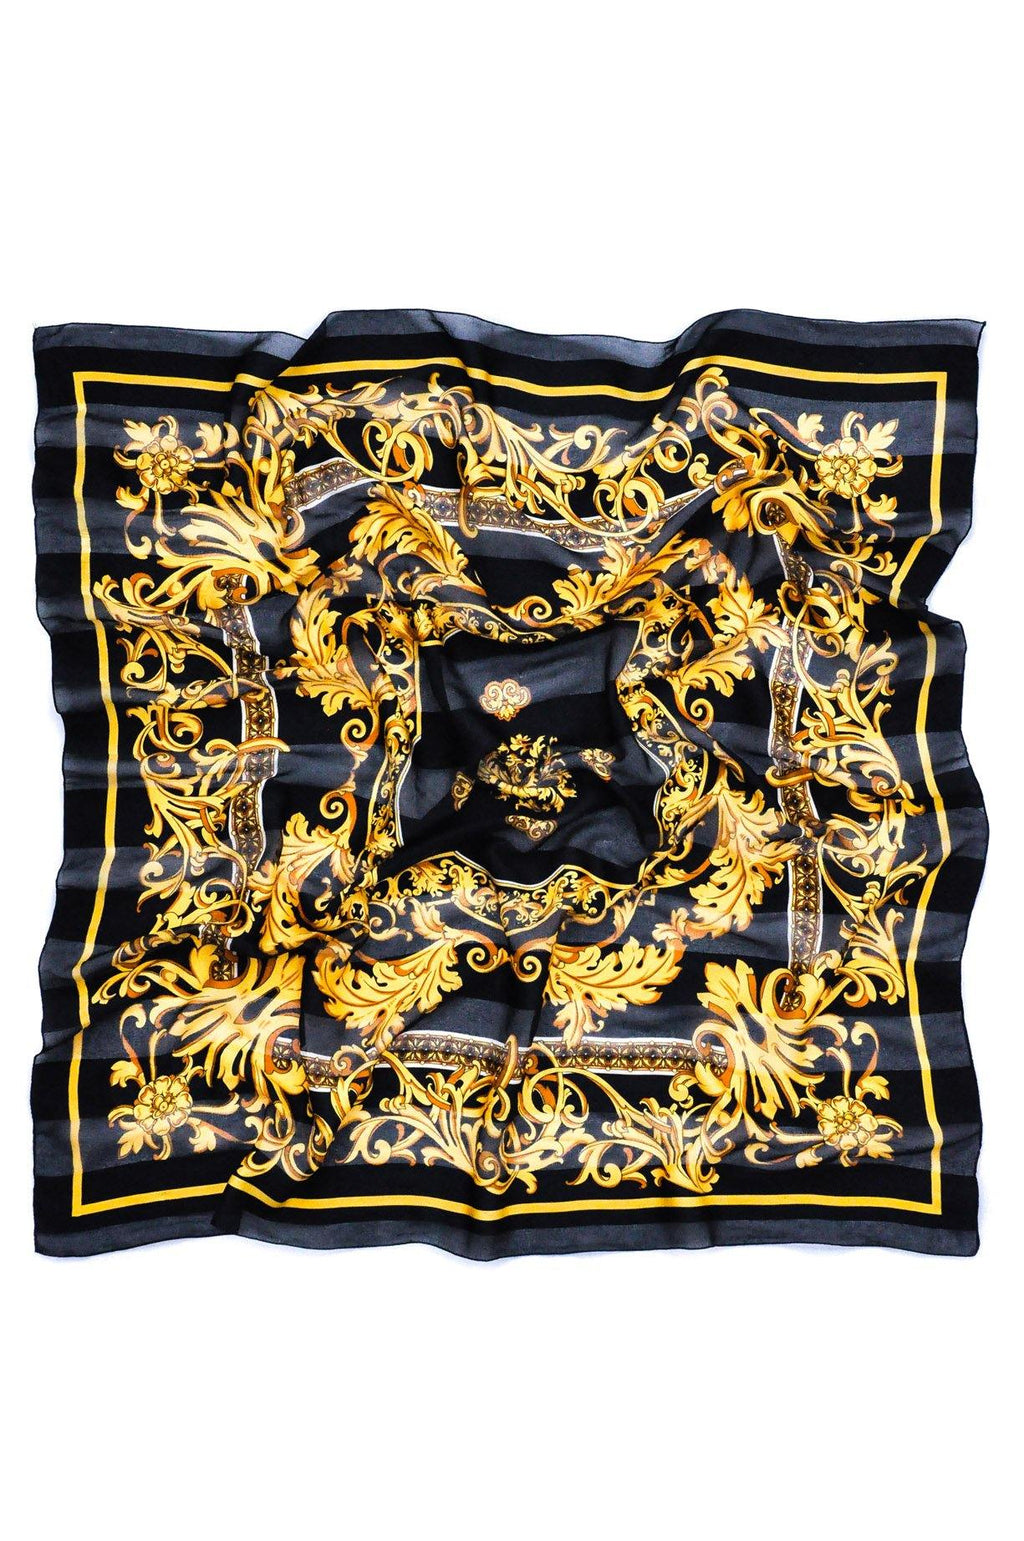 Gold & Black Square Scarf